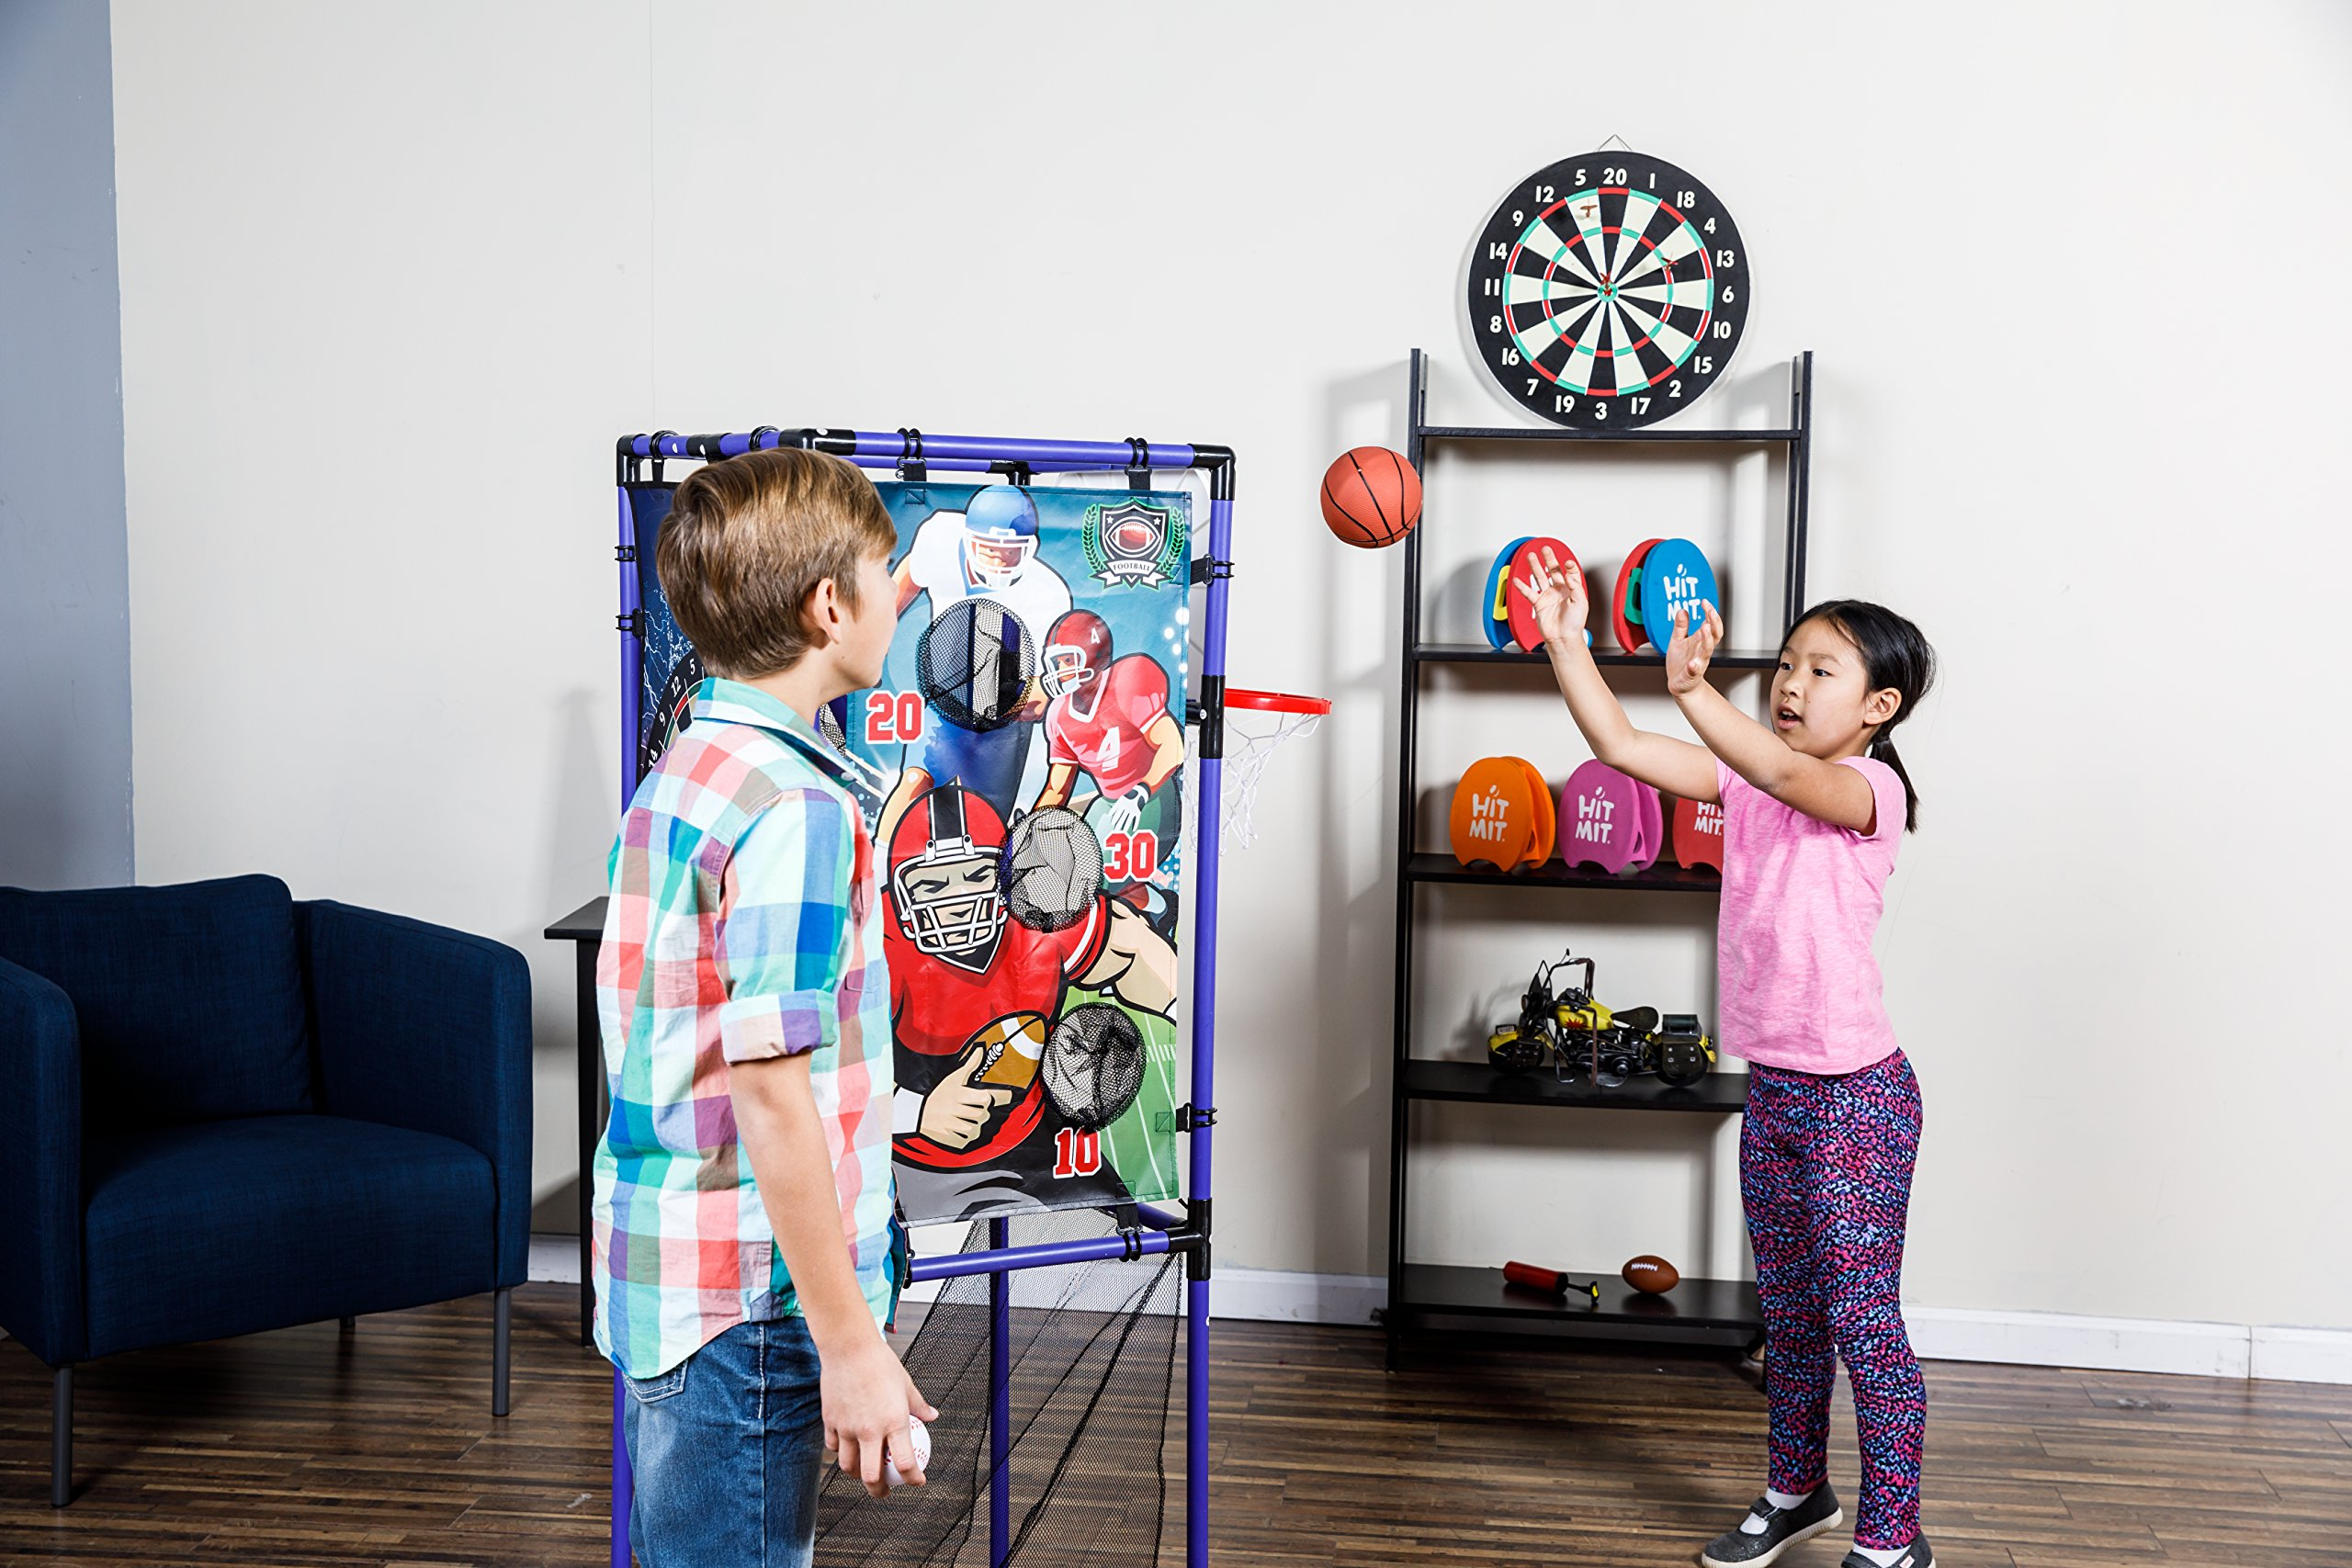 Sport Squad 5-in-1 Multi-Sport Kid's Game Set – Features Baseball, Basketball, Football, Soccer, Darts – Great for Indoor and Outdoor Play by Sport Squad (Image #5)